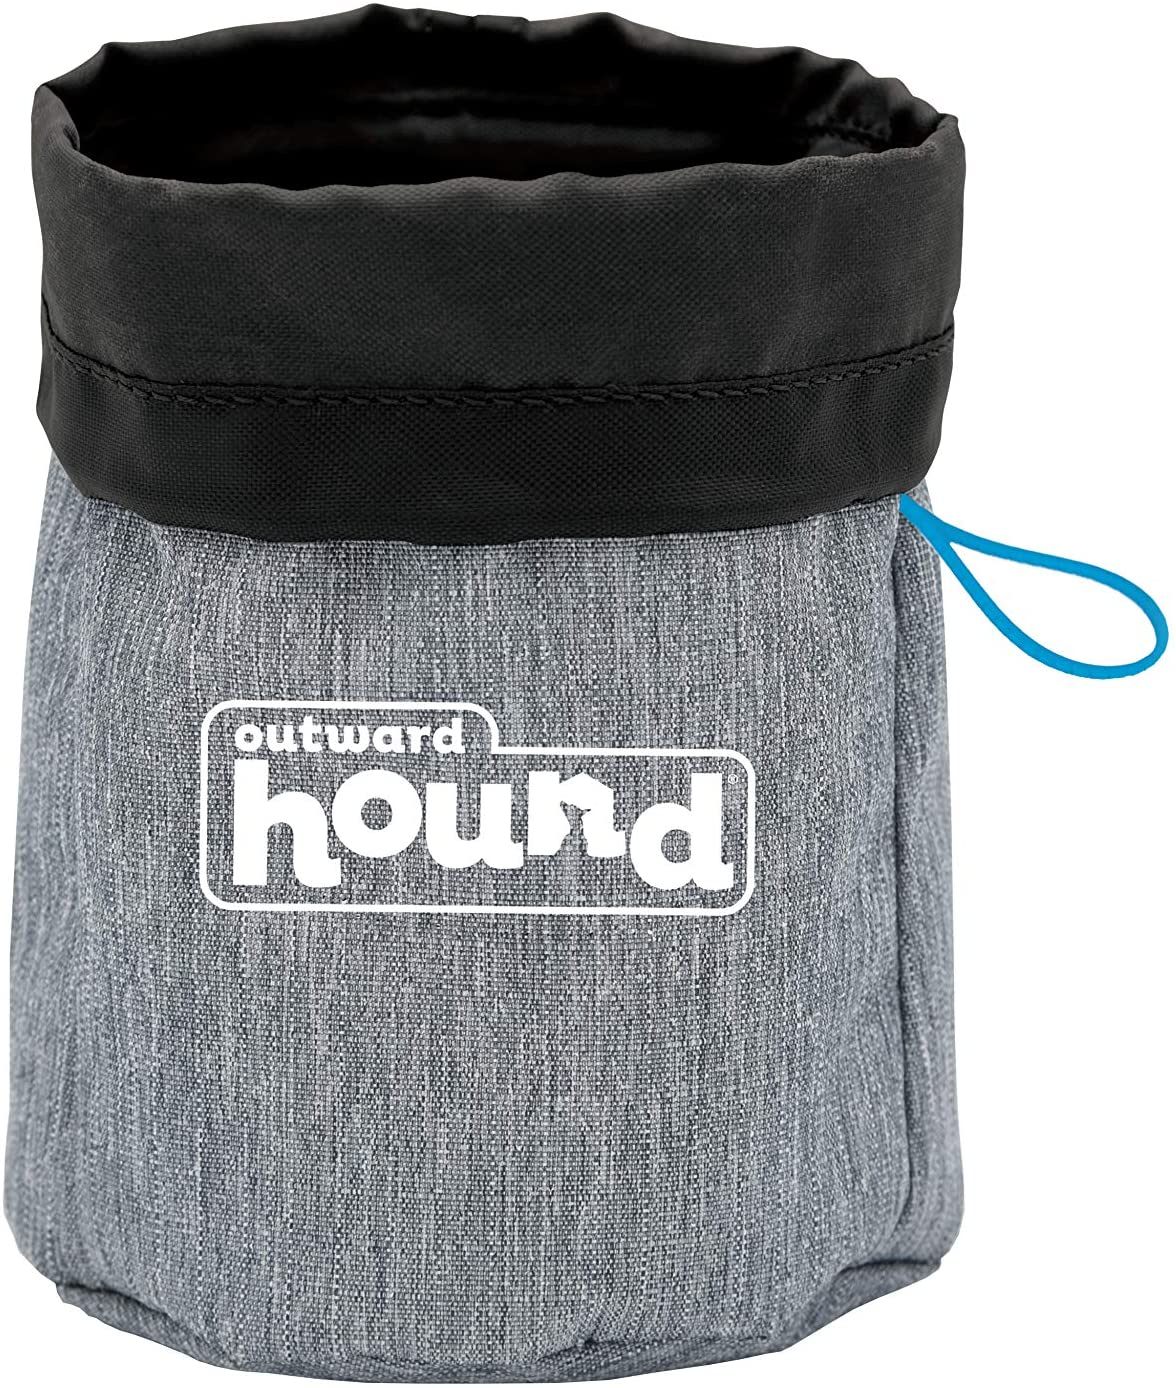 Outward Hound Treat Tote Storage Accessory Bag for Balls, Treats, and Training Gear